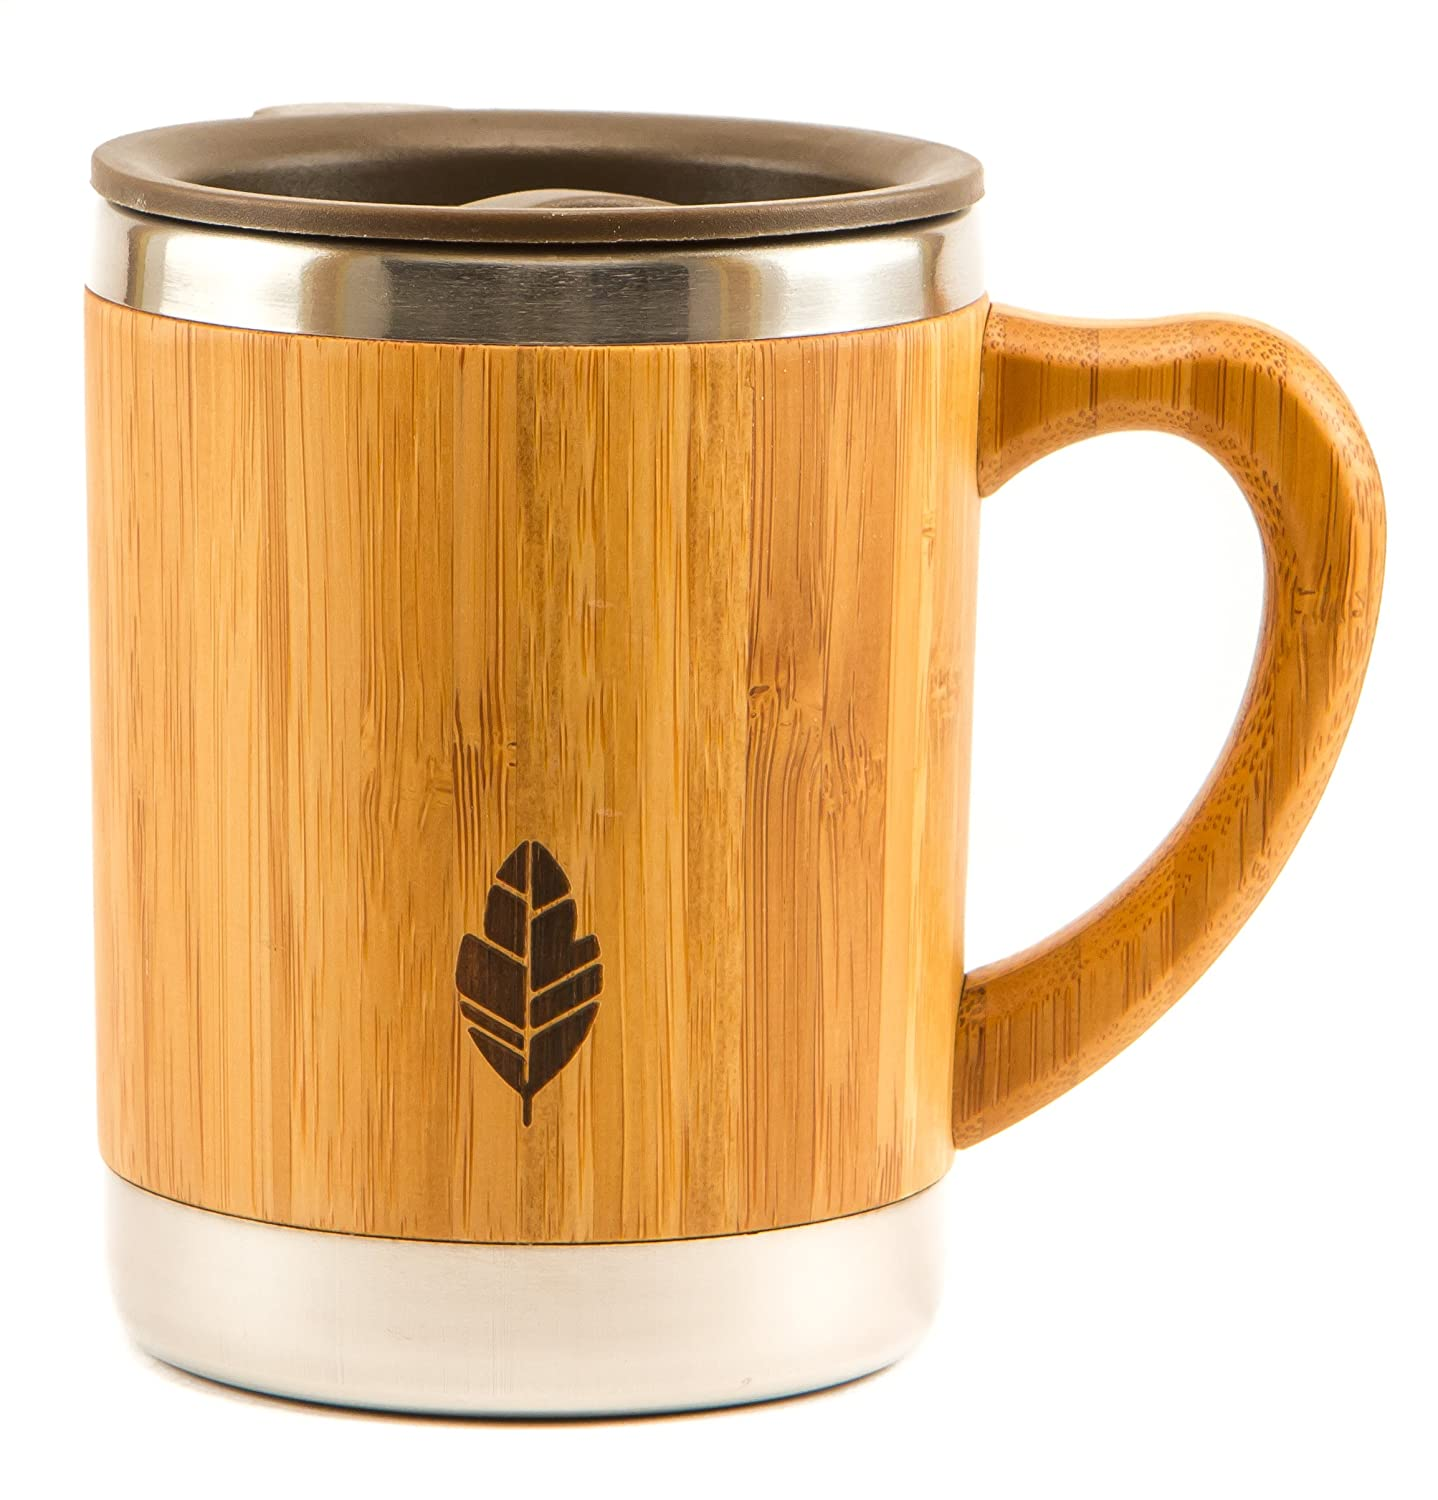 MyHomeIdeas Stainless Steel Bamboo Mug with Lid and Handle - Natural Wood Wooden Light Coffee Tea Mug - 11 oz Non-breakable Design - 100% Eco And Environmentally Safe BM-01